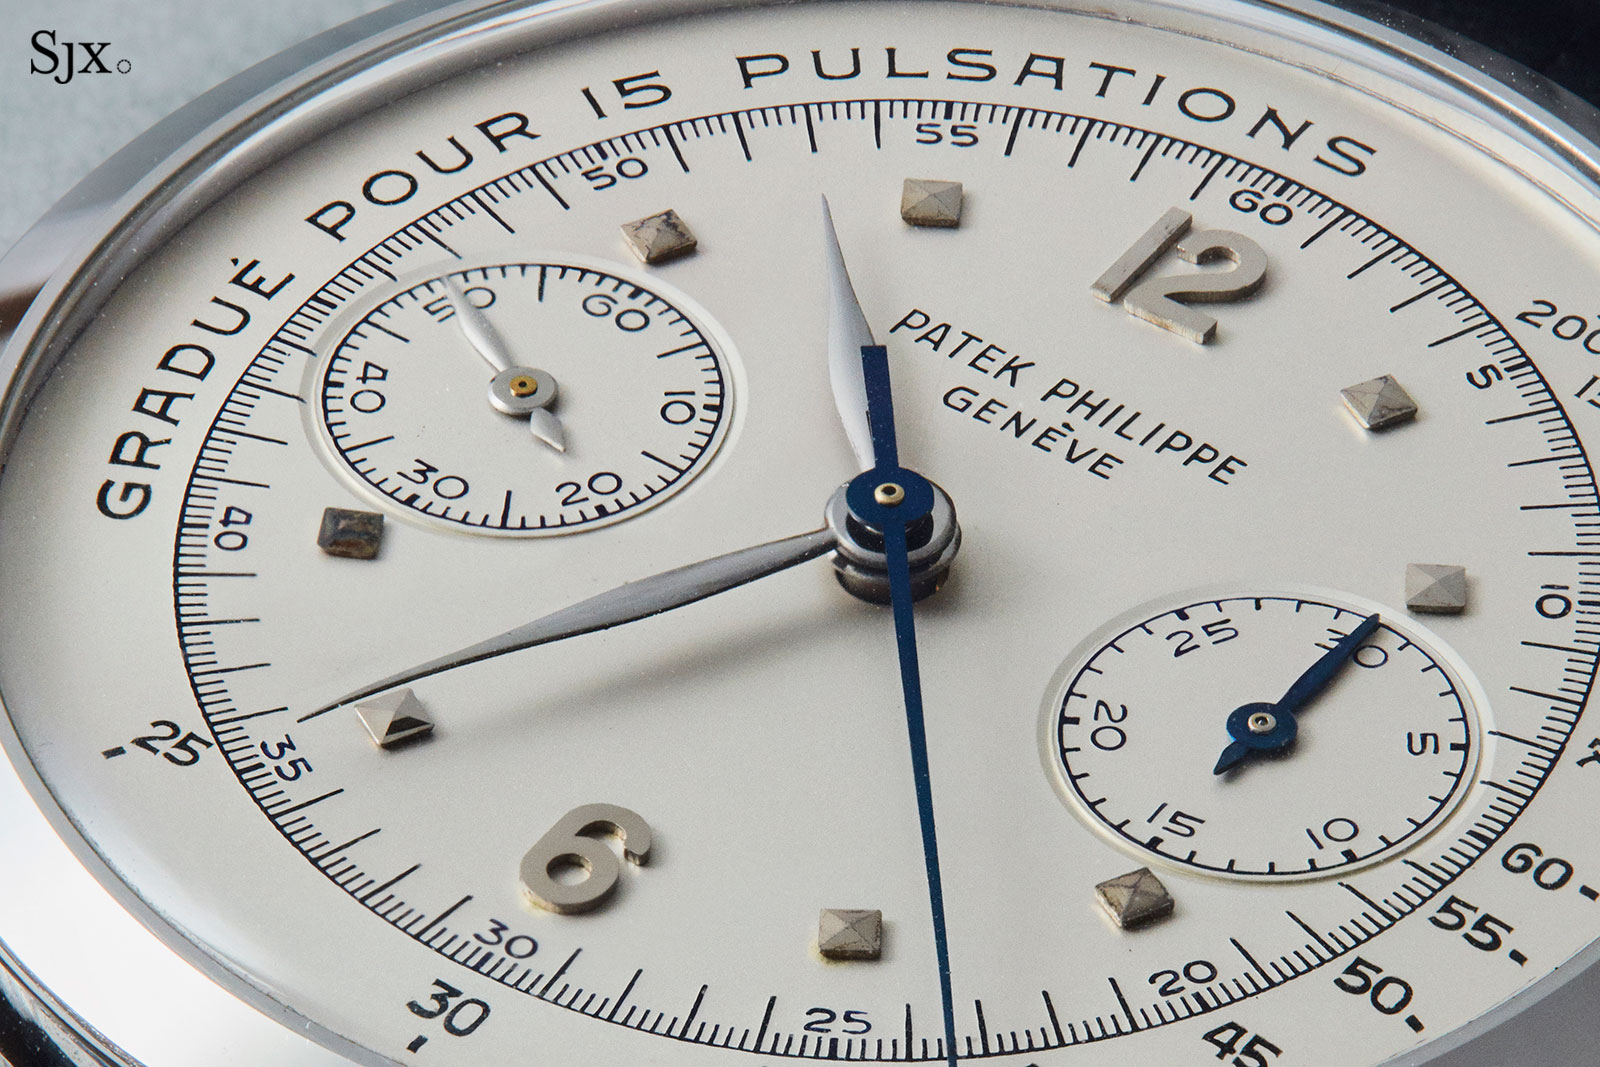 Patek Philippe 1579 steel pulsations dial 3